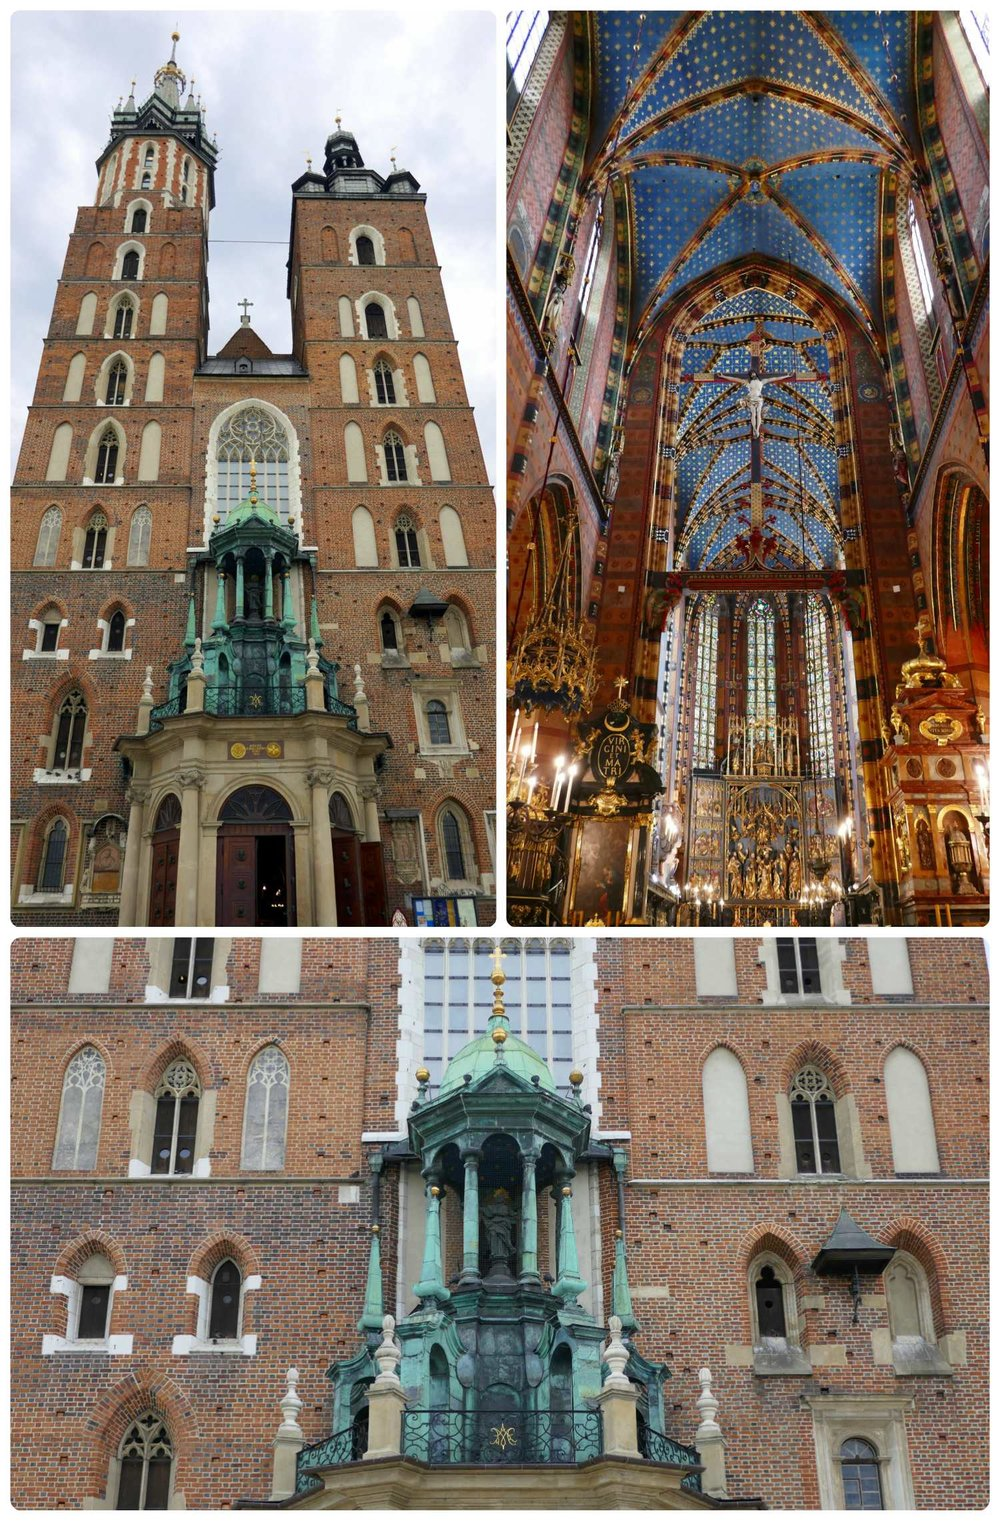 St. Mary's Basilica is a dominating and beautiful presence in Old Town Square Krakow, Poland.